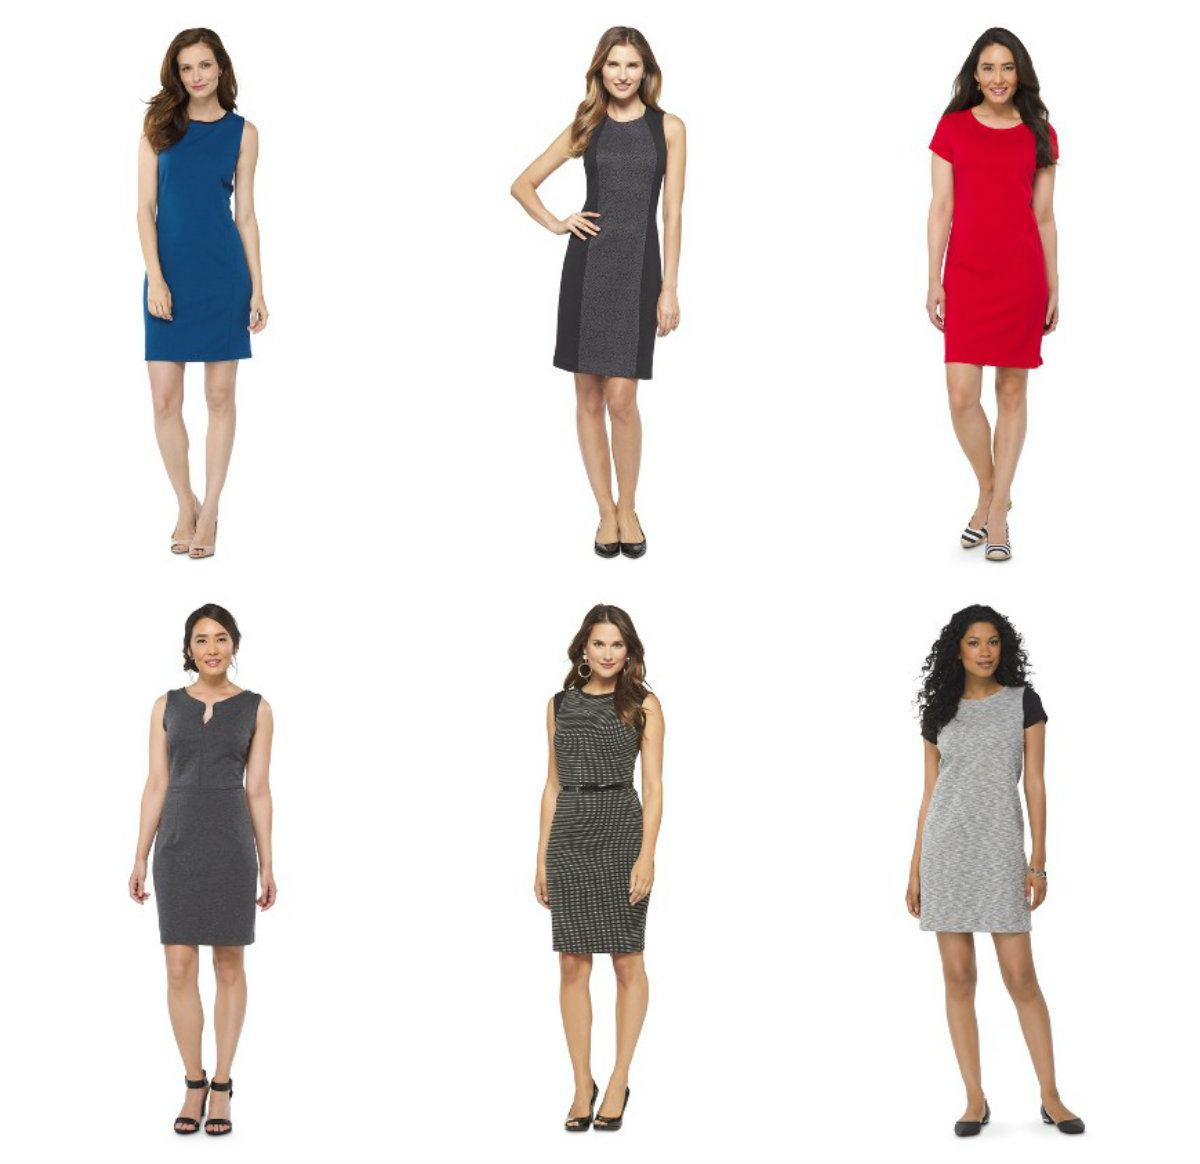 Womens Holiday Dresses At Target 23